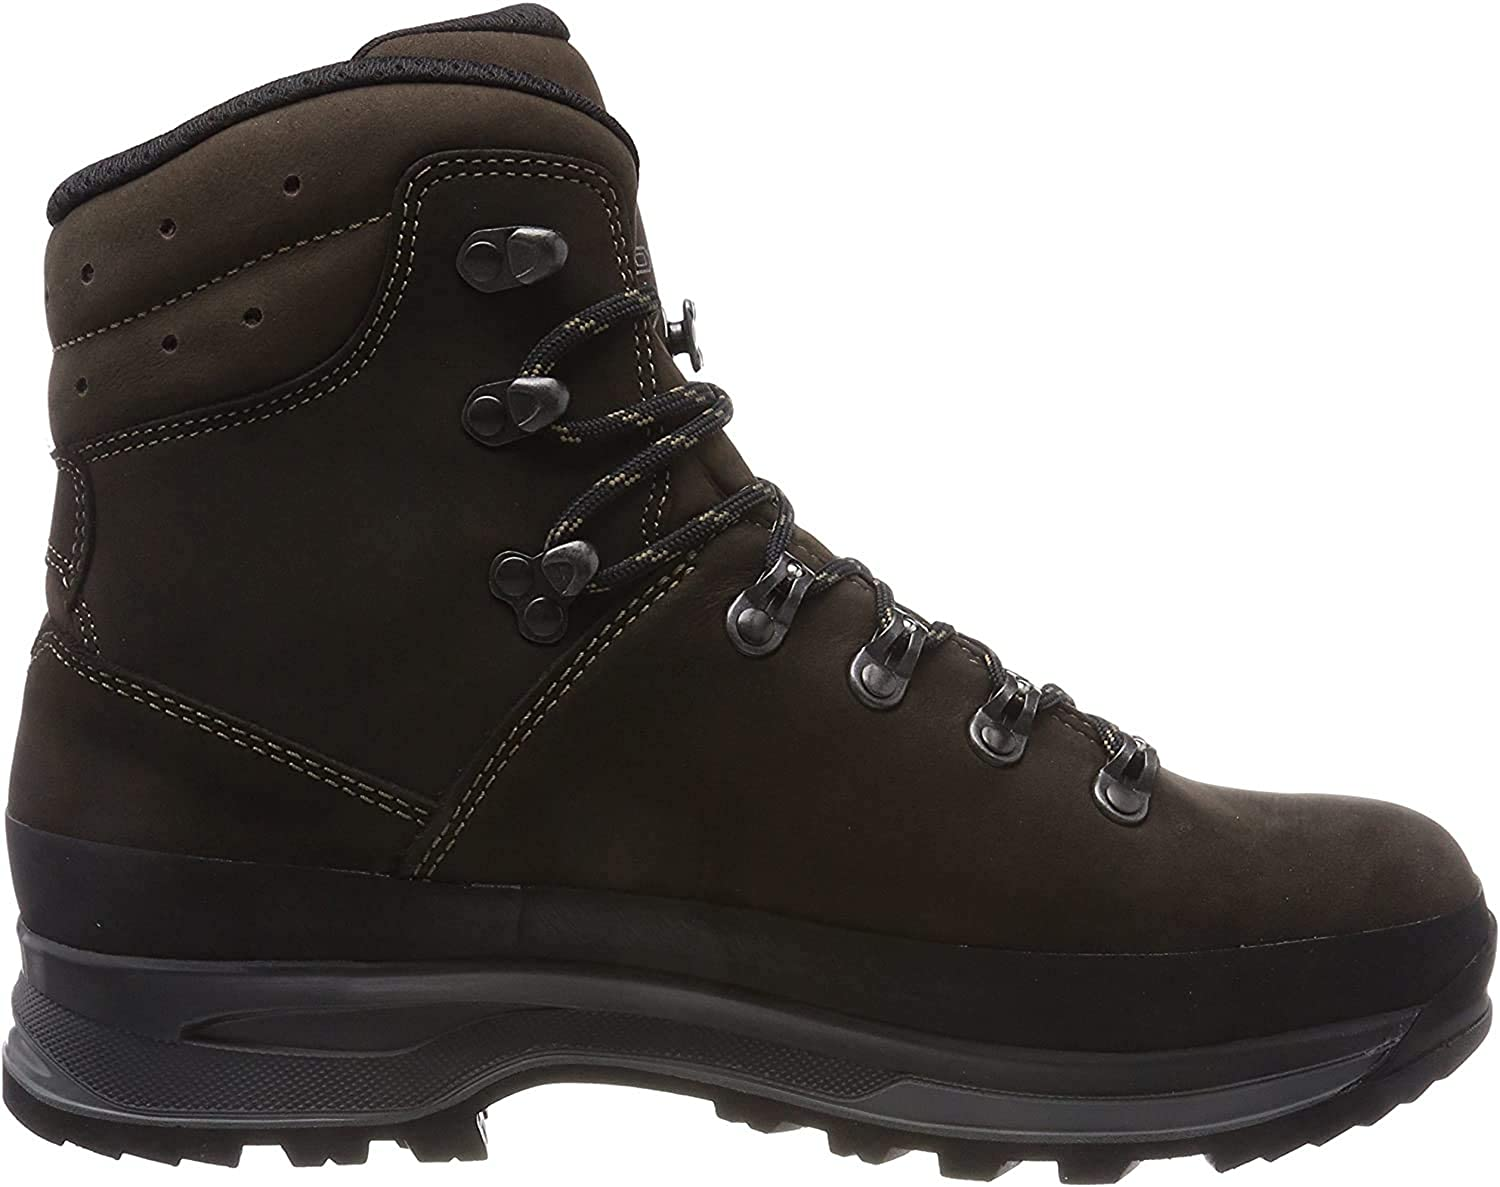 Lowa Men s Ranger III GTX Hiking Boot